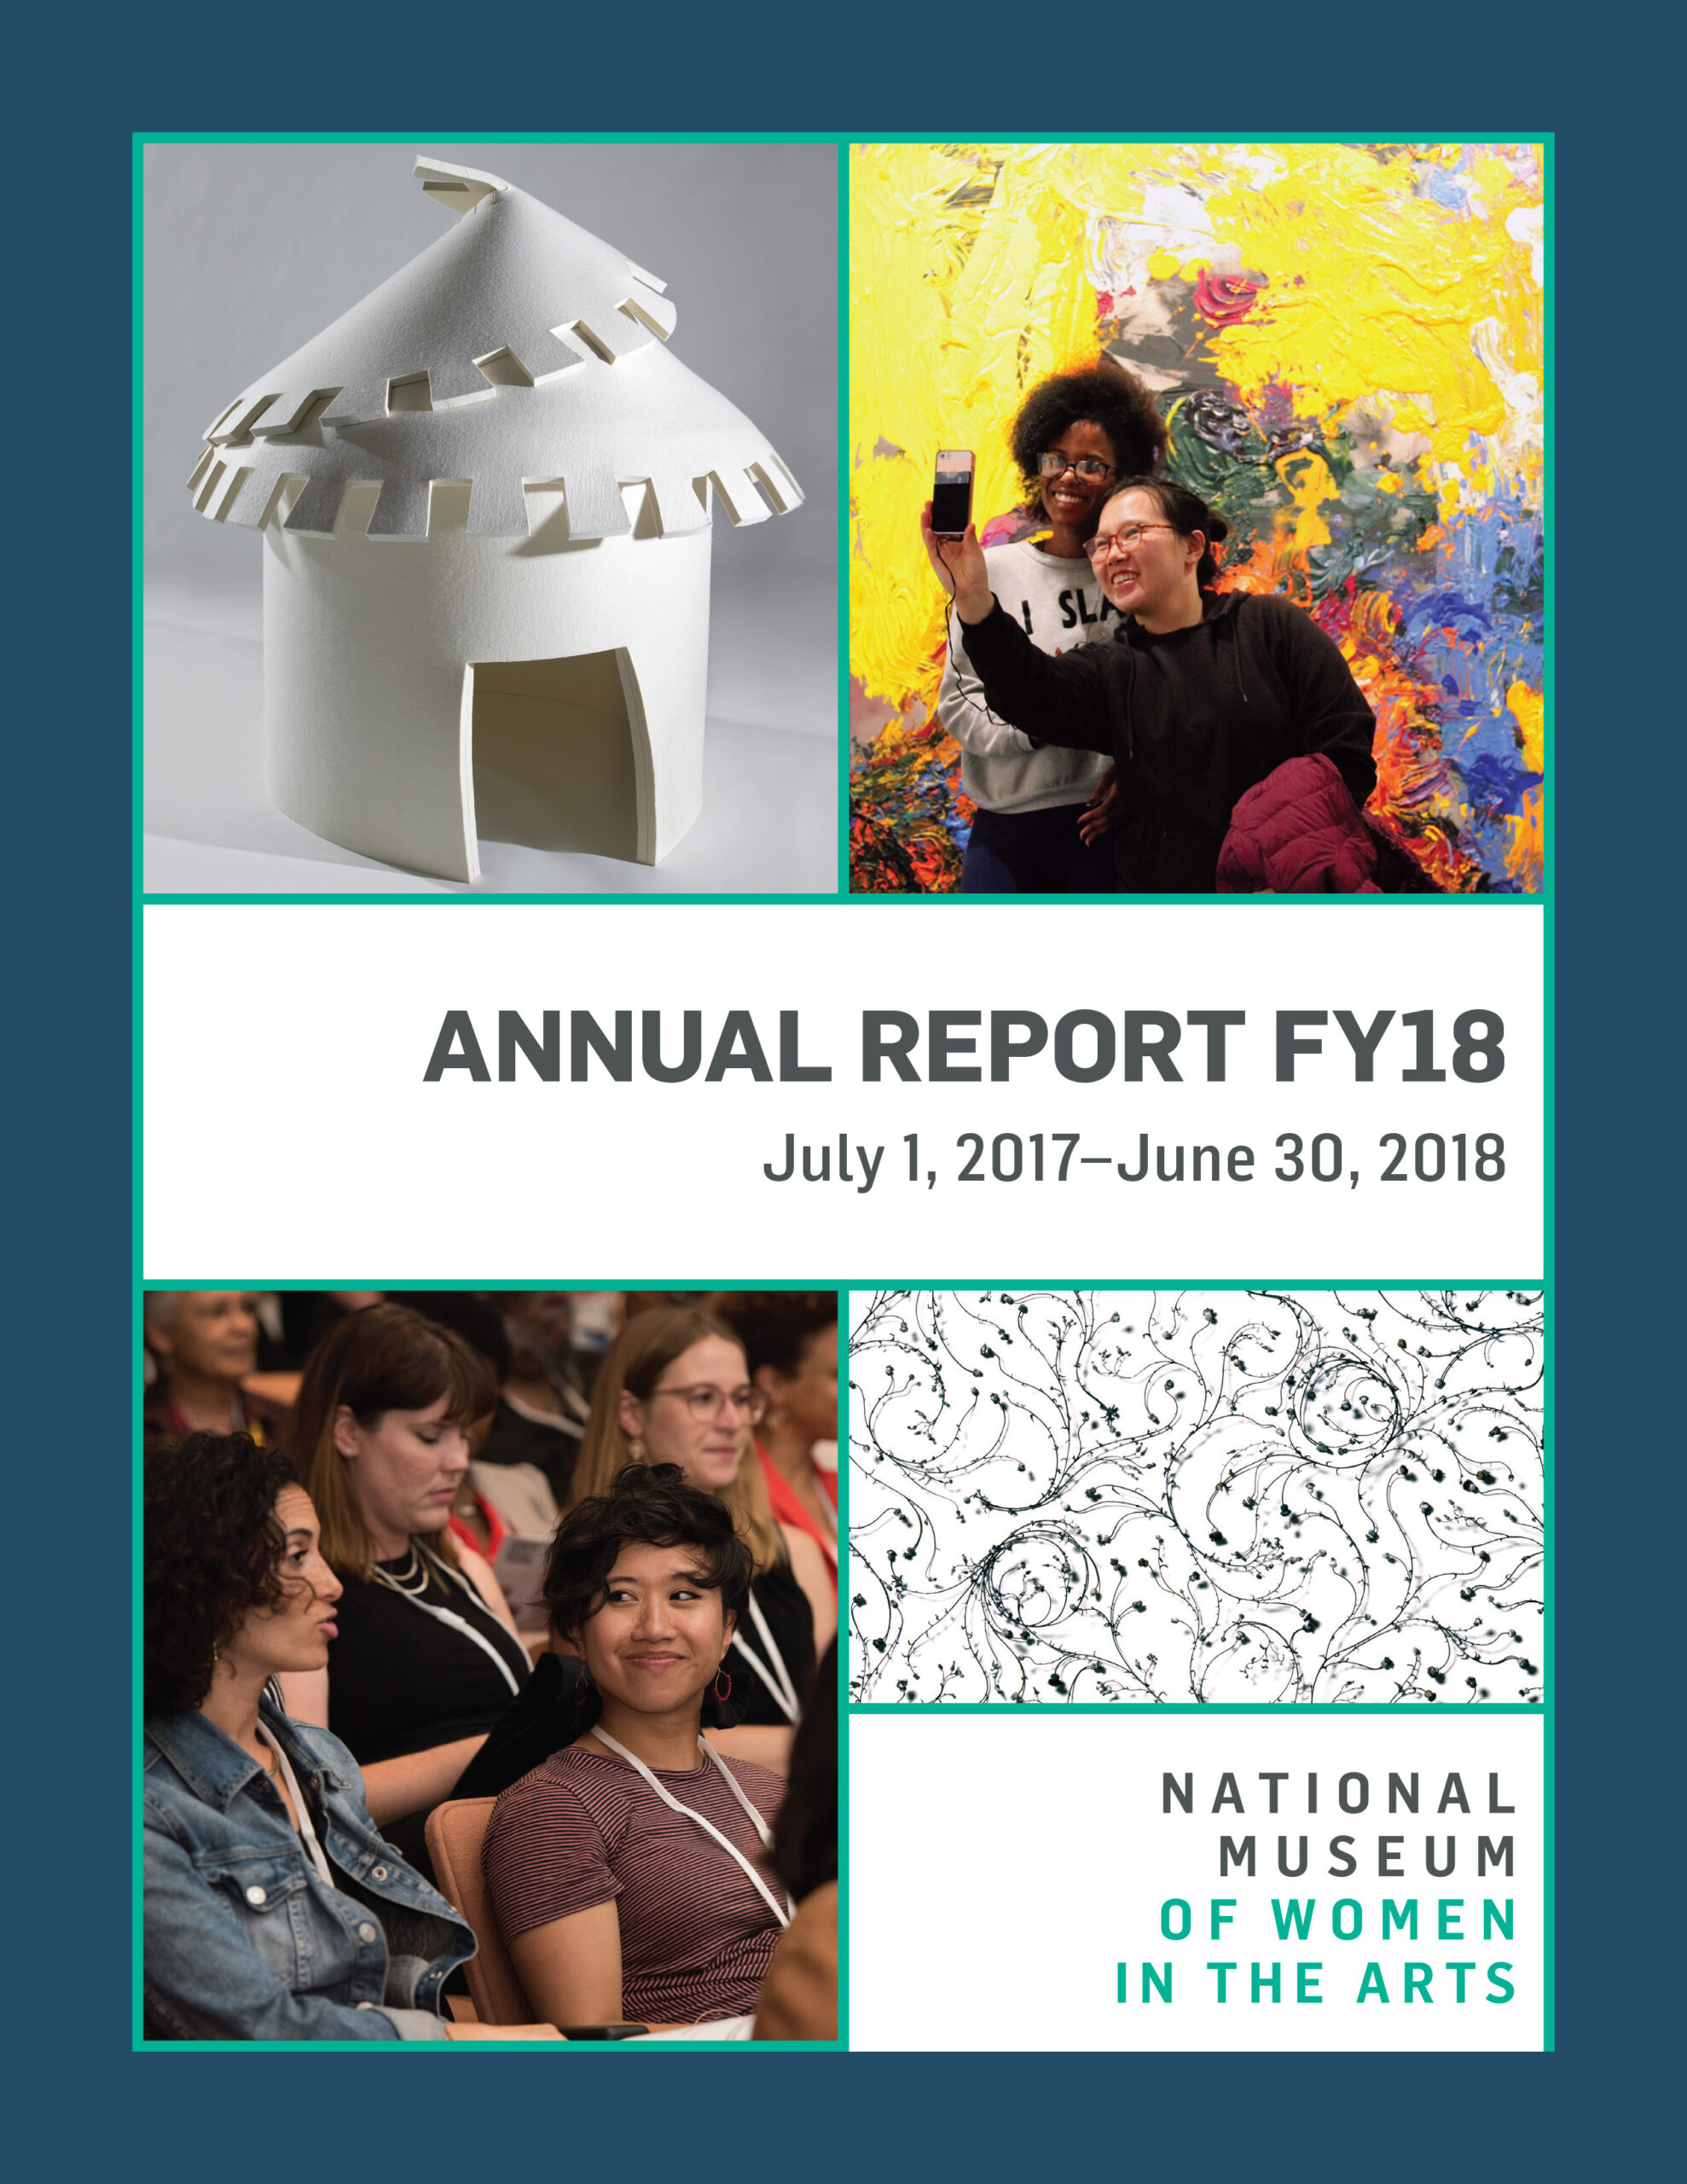 Cover of the 2018 annual report shows four images in a two-by-two grid. Clockwise from the top left: the first is of white felt house, the second is two individuals taking a selfie in front of a colorful image, the third is of seated audience members, the third is a black-and-white print of swirling lines and dots.